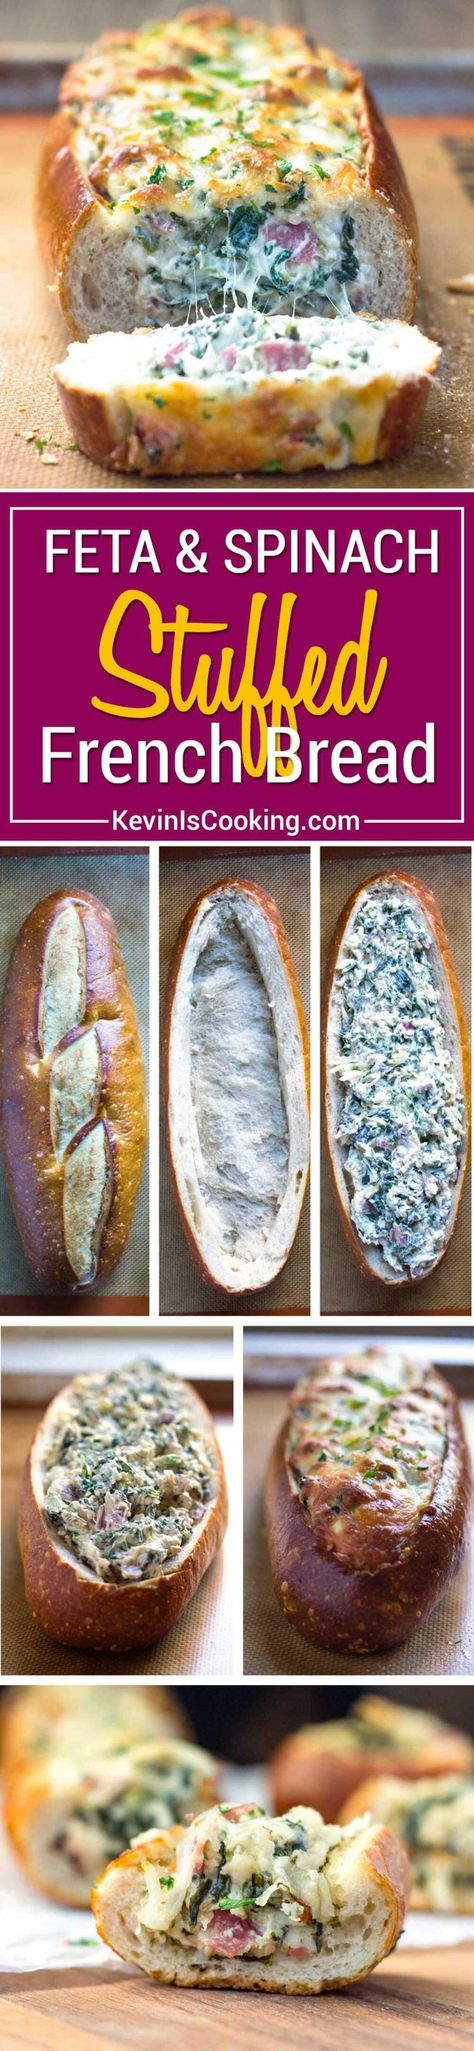 This easy, cheesy, creamy feta and spinach stuffed french bread is deliriously rich and tasty. It reminds me of a Greek spanakopita but all stuffed inside a wonderful sourdough bread loaf. Perfect hand held appetizer for parties or the holidays!